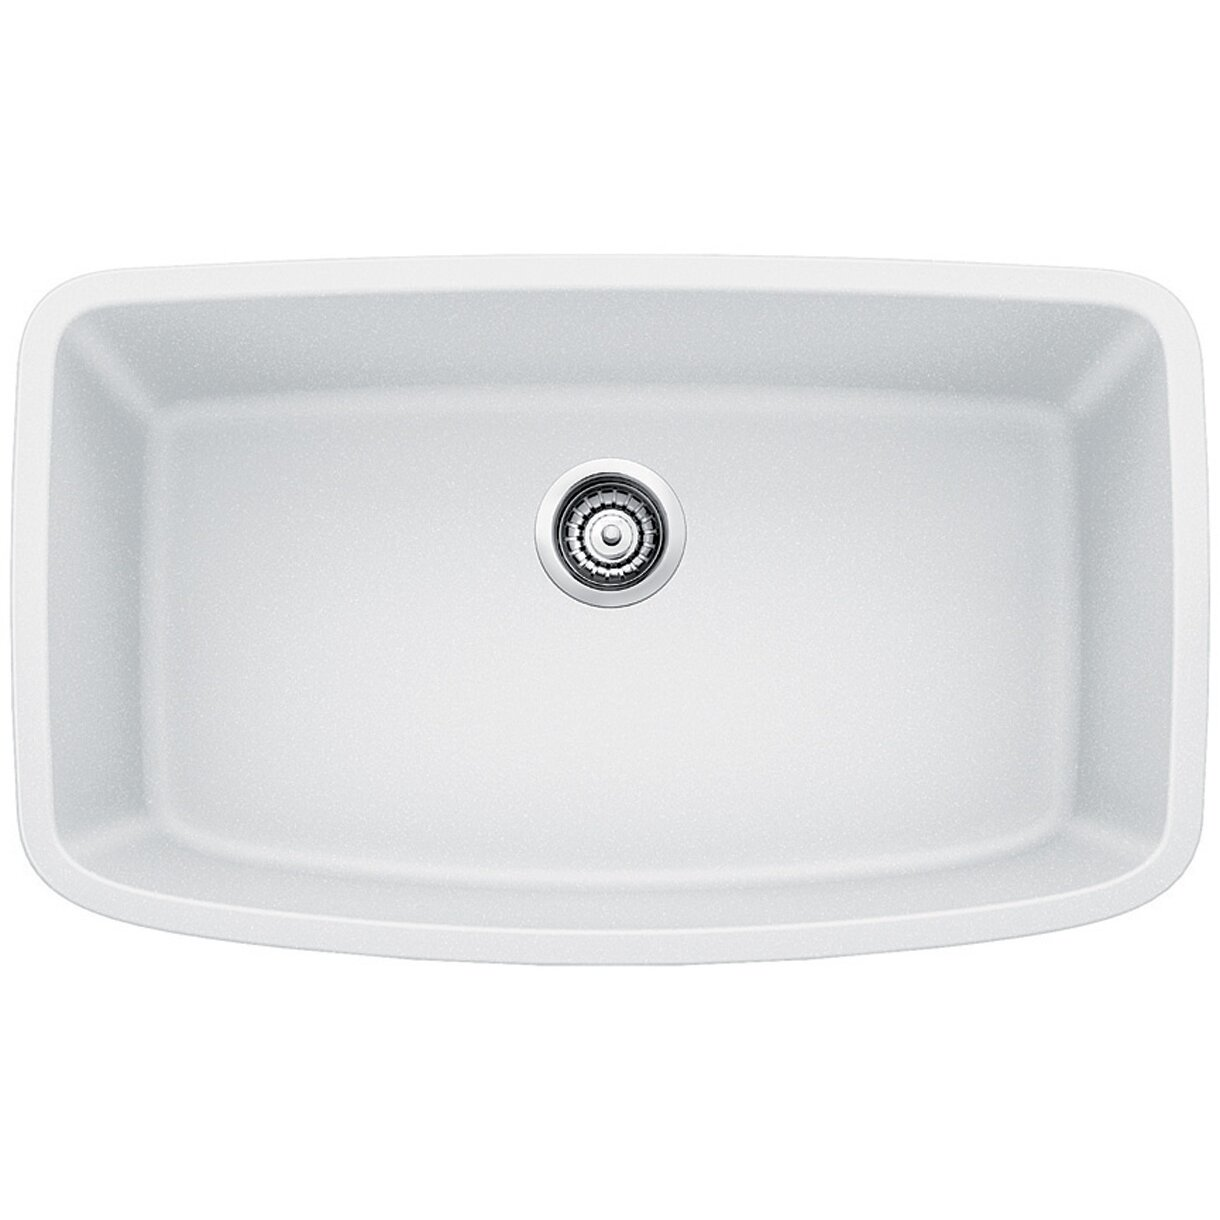 White Kitchen Sink Undermount Valea 32 X 19 Super Single Undermount Kitchen Sink Reviews